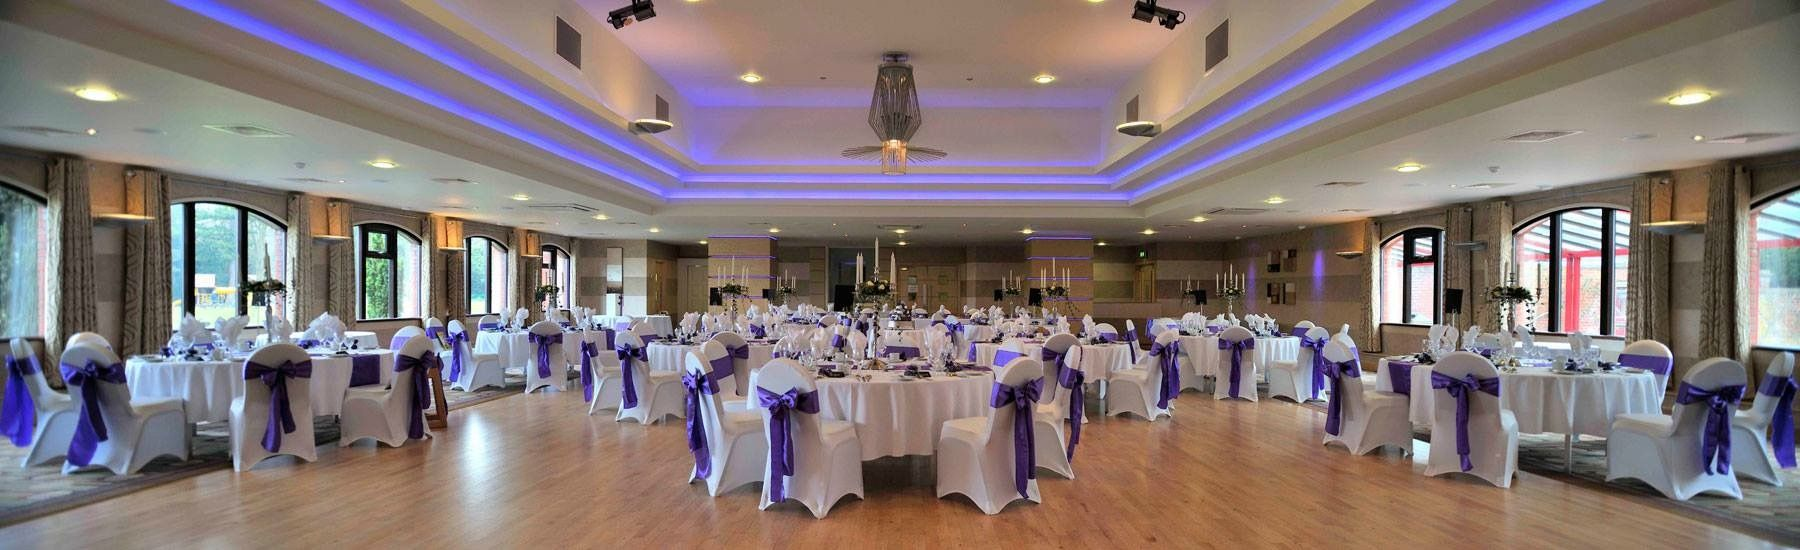 Wedding Venue At The Warren Police Place Coney Hall West Wickham Kent England